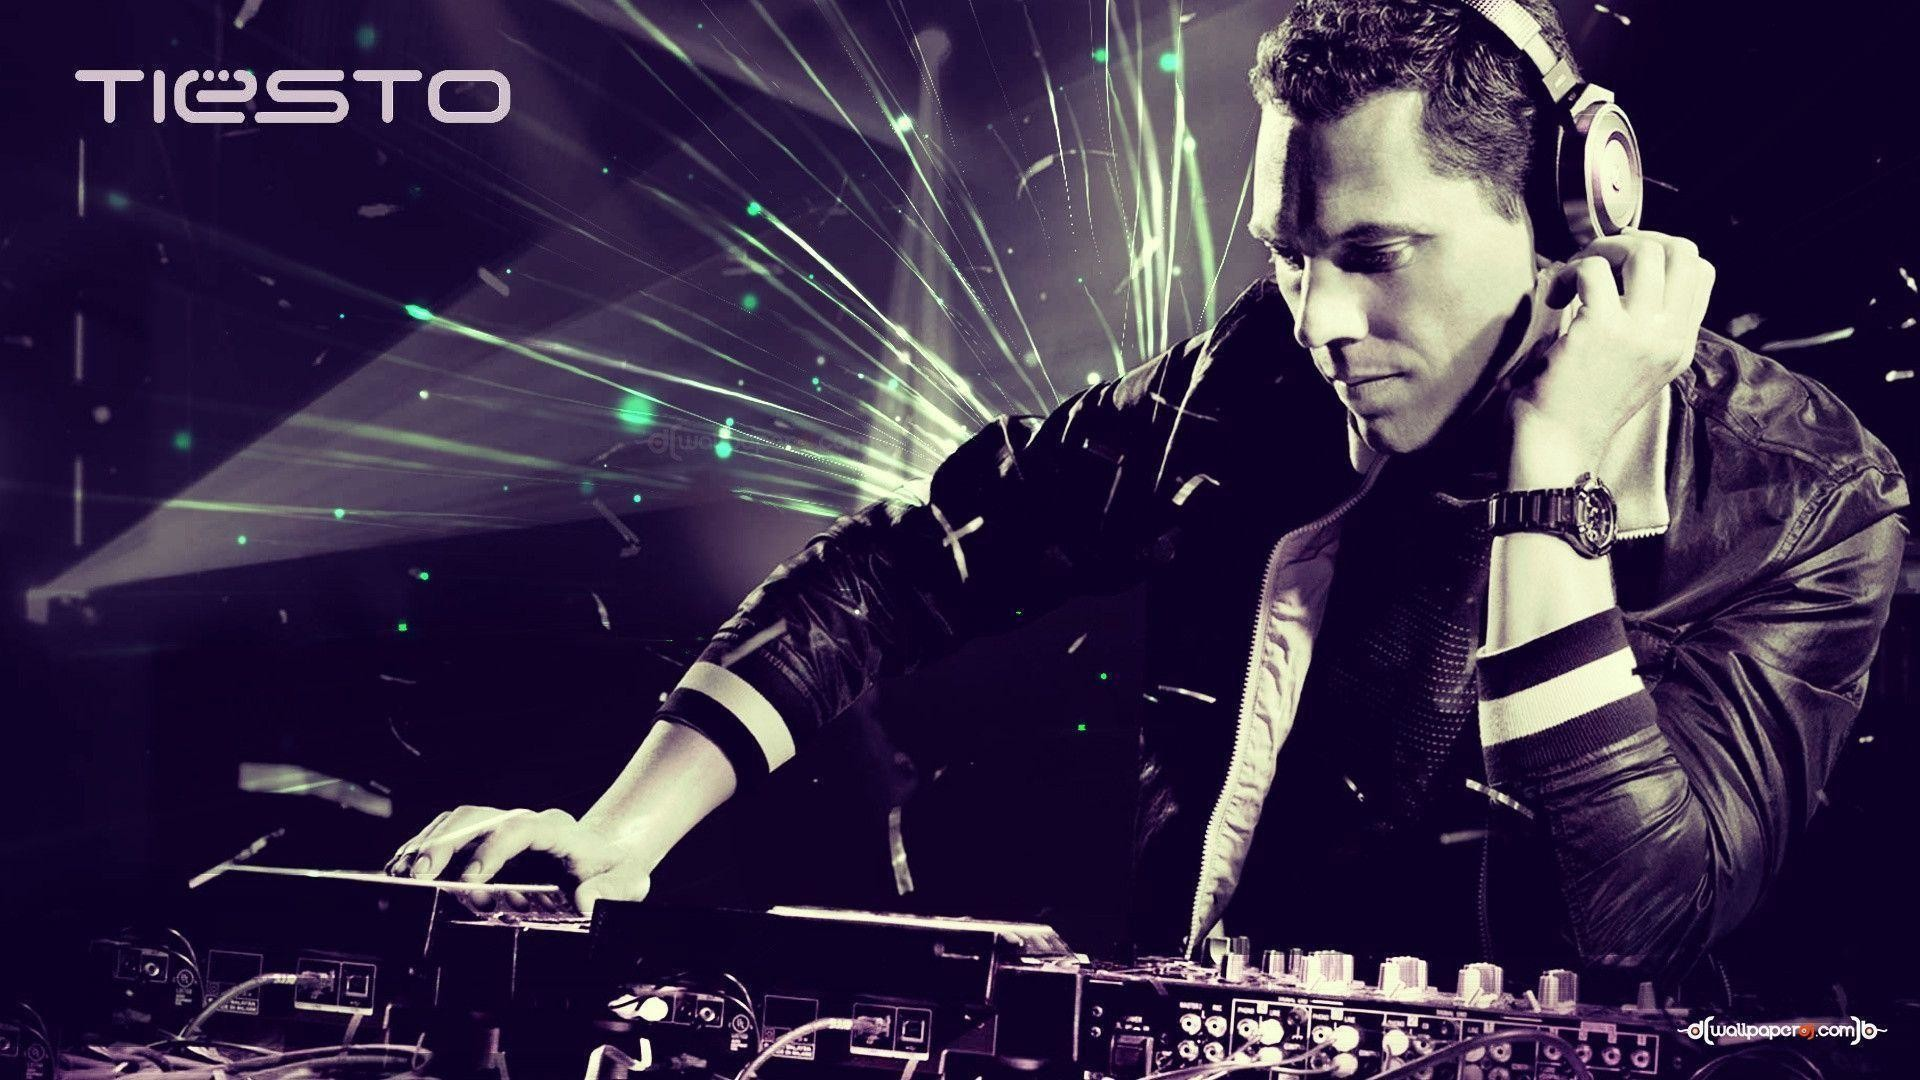 Tiesto Wallpapers HD – Wallpaper Cave